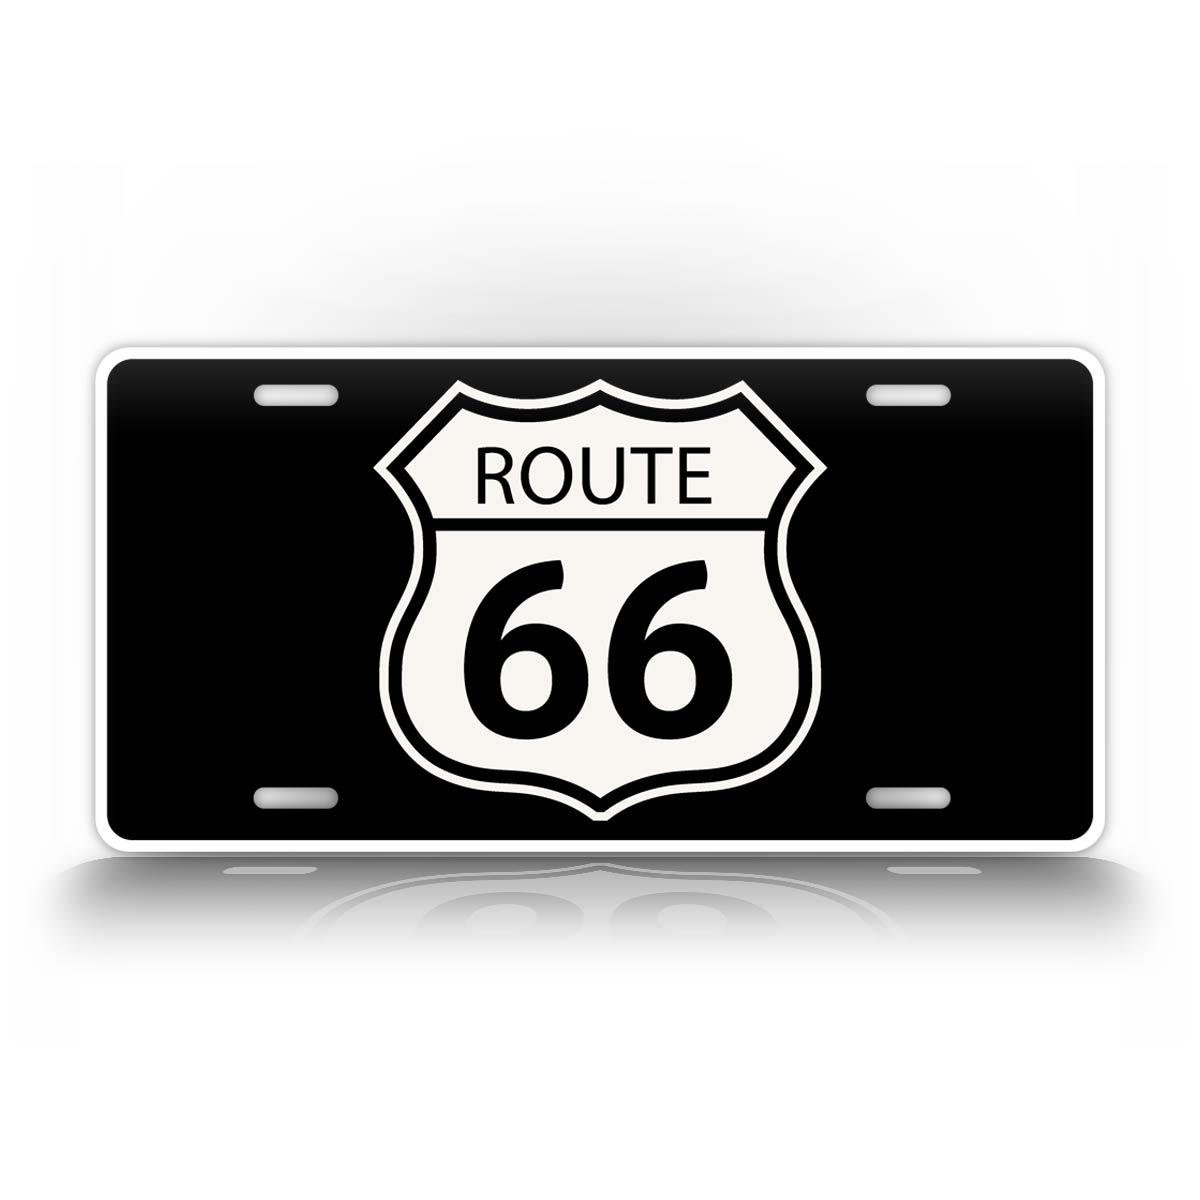 Classic Black And White Route 66 License Plate